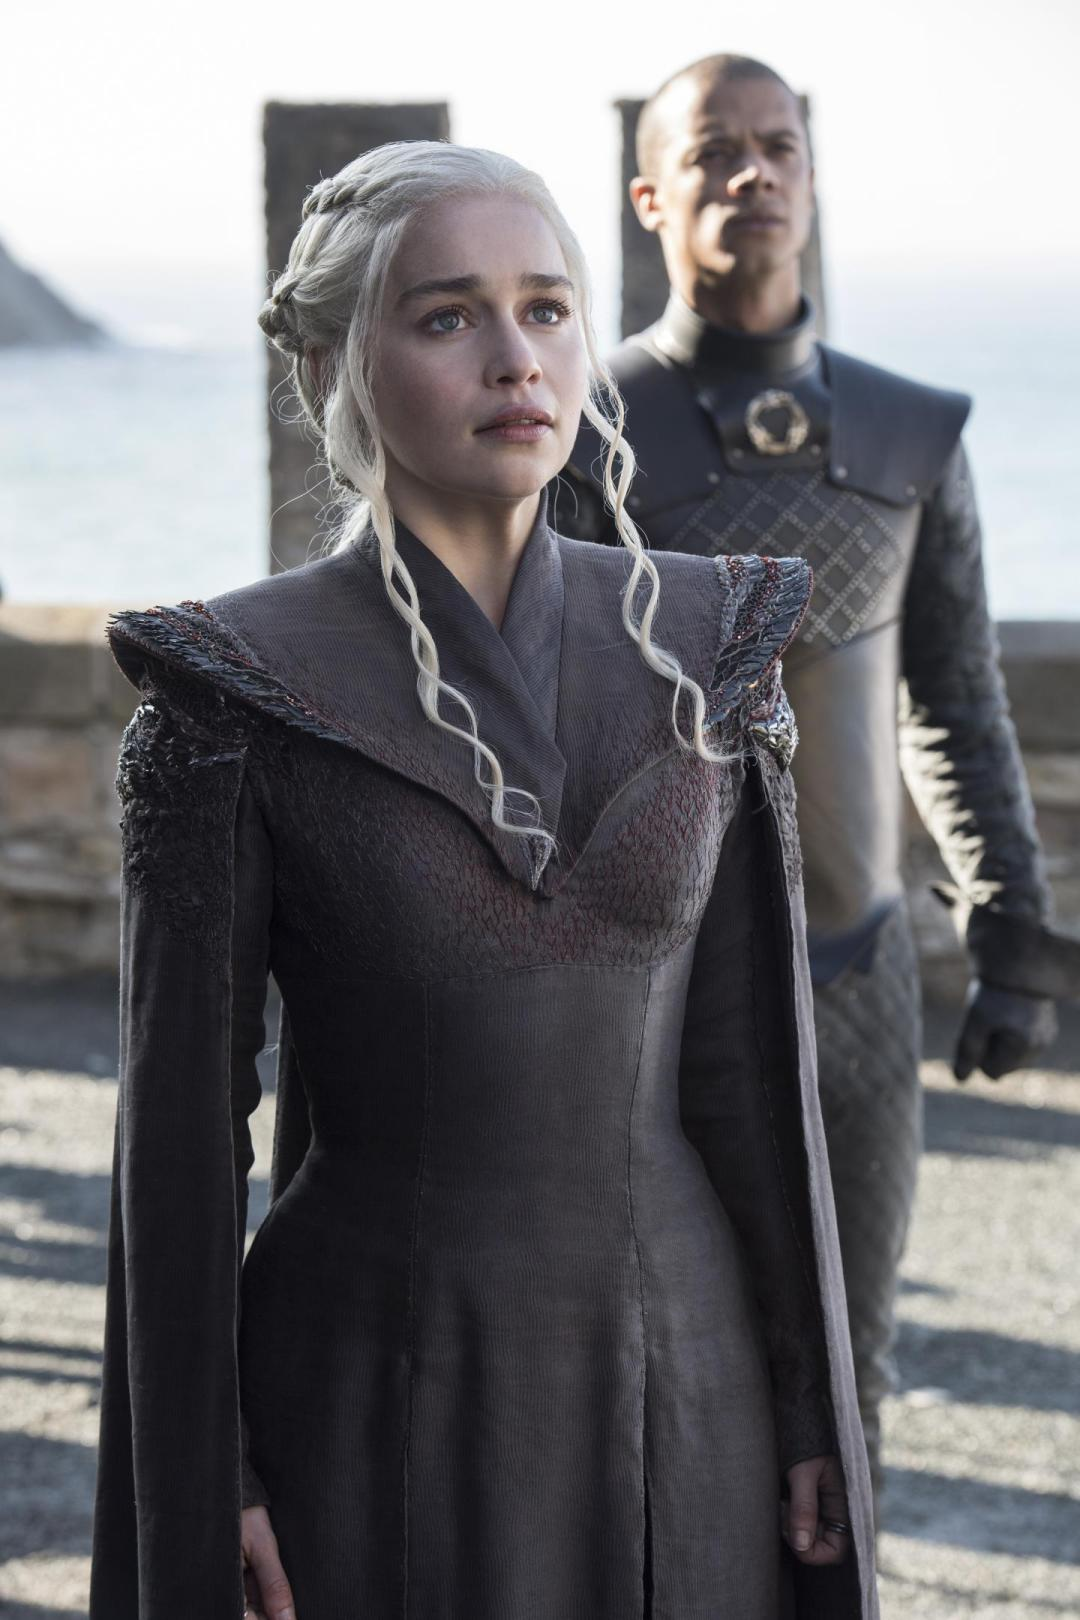 Daenerys in awe when she arrives at Dragonstone where she was born